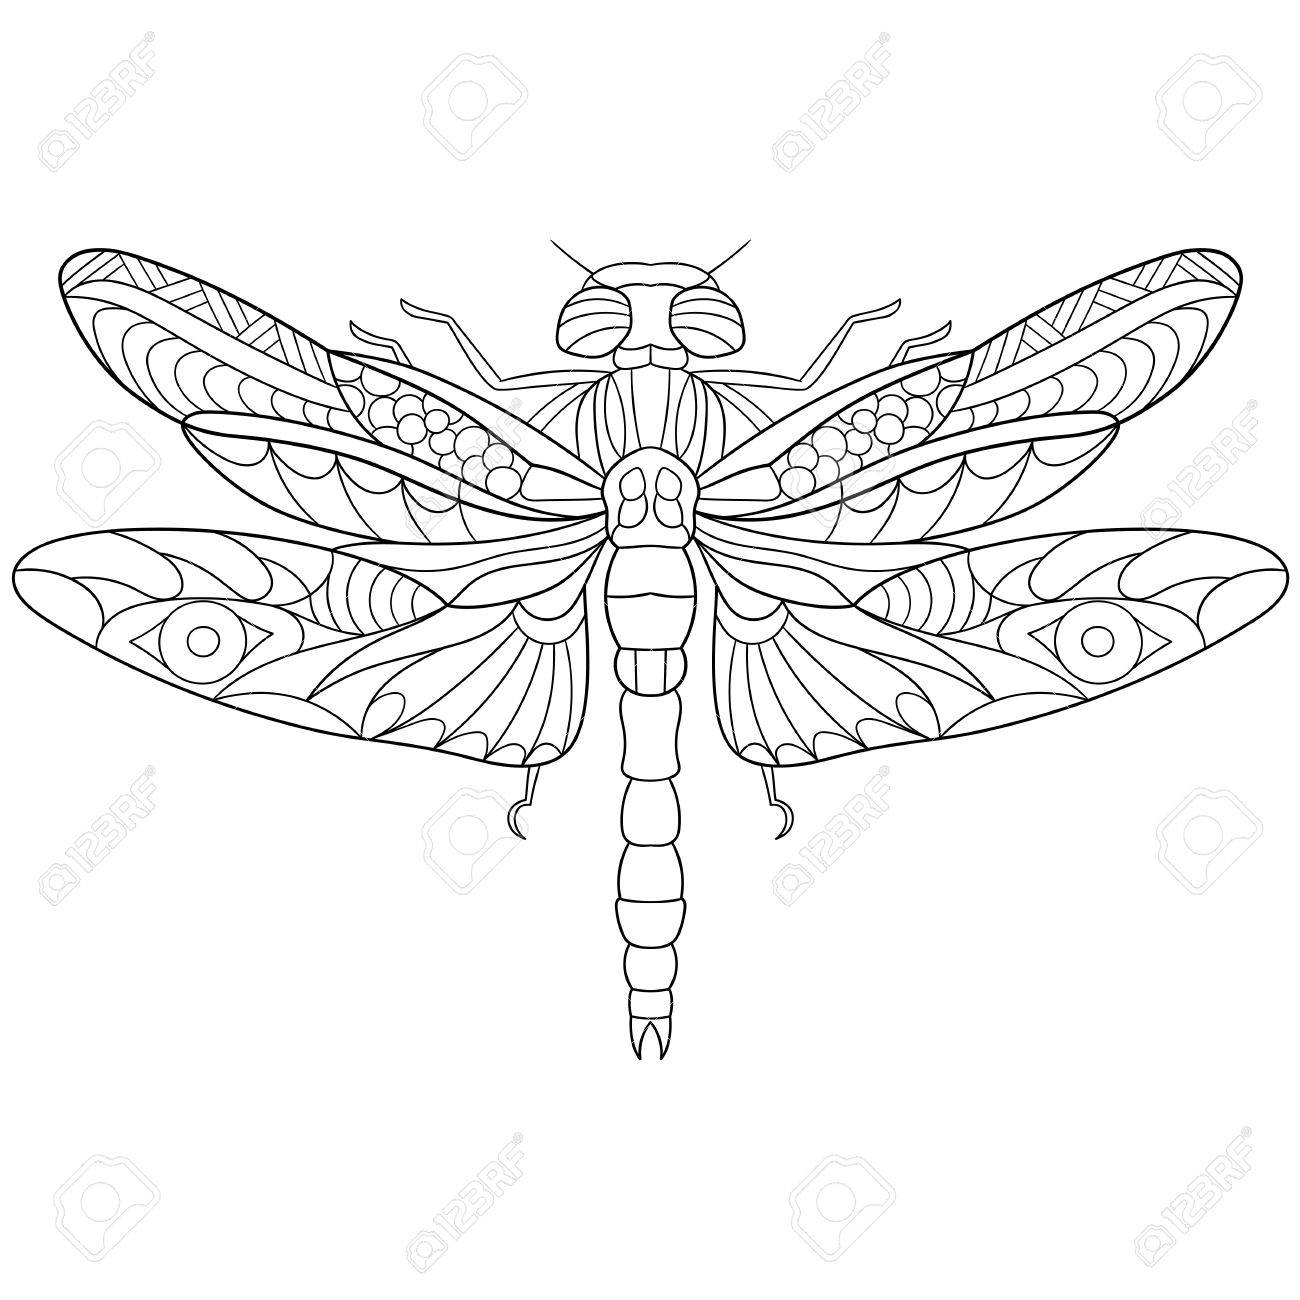 Stylized Cartoon Dragonfly Insect, Isolated On White Background ...